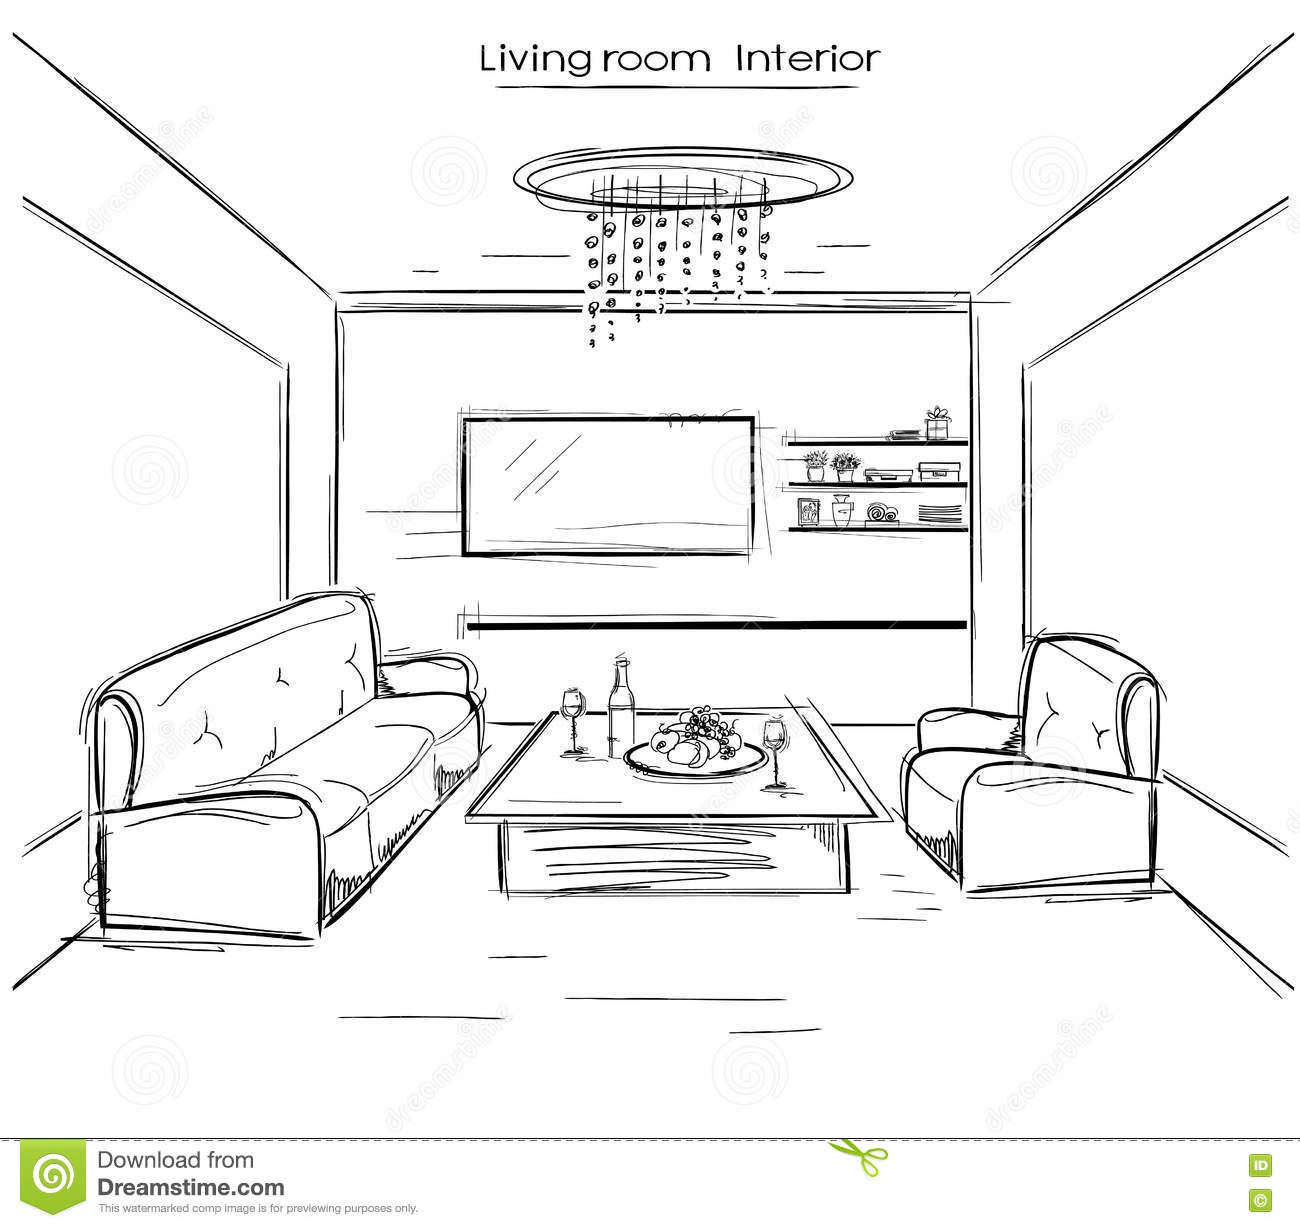 Living room interior vector black hand drawing for Living room y sus partes